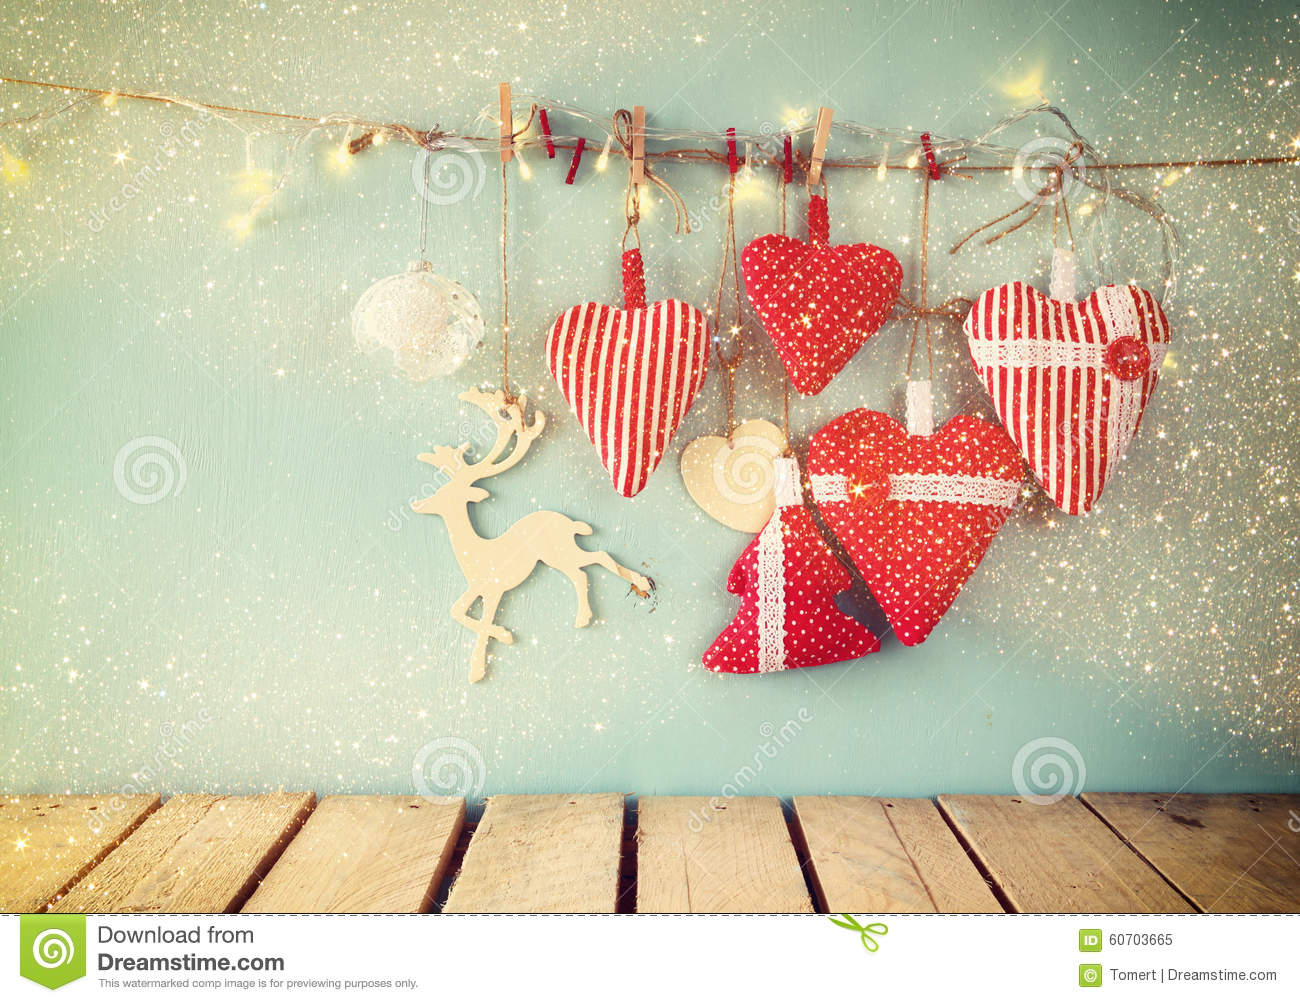 Christmas image of fabric red hearts and tree. wooden reindeer and garland lights, hanging on rope